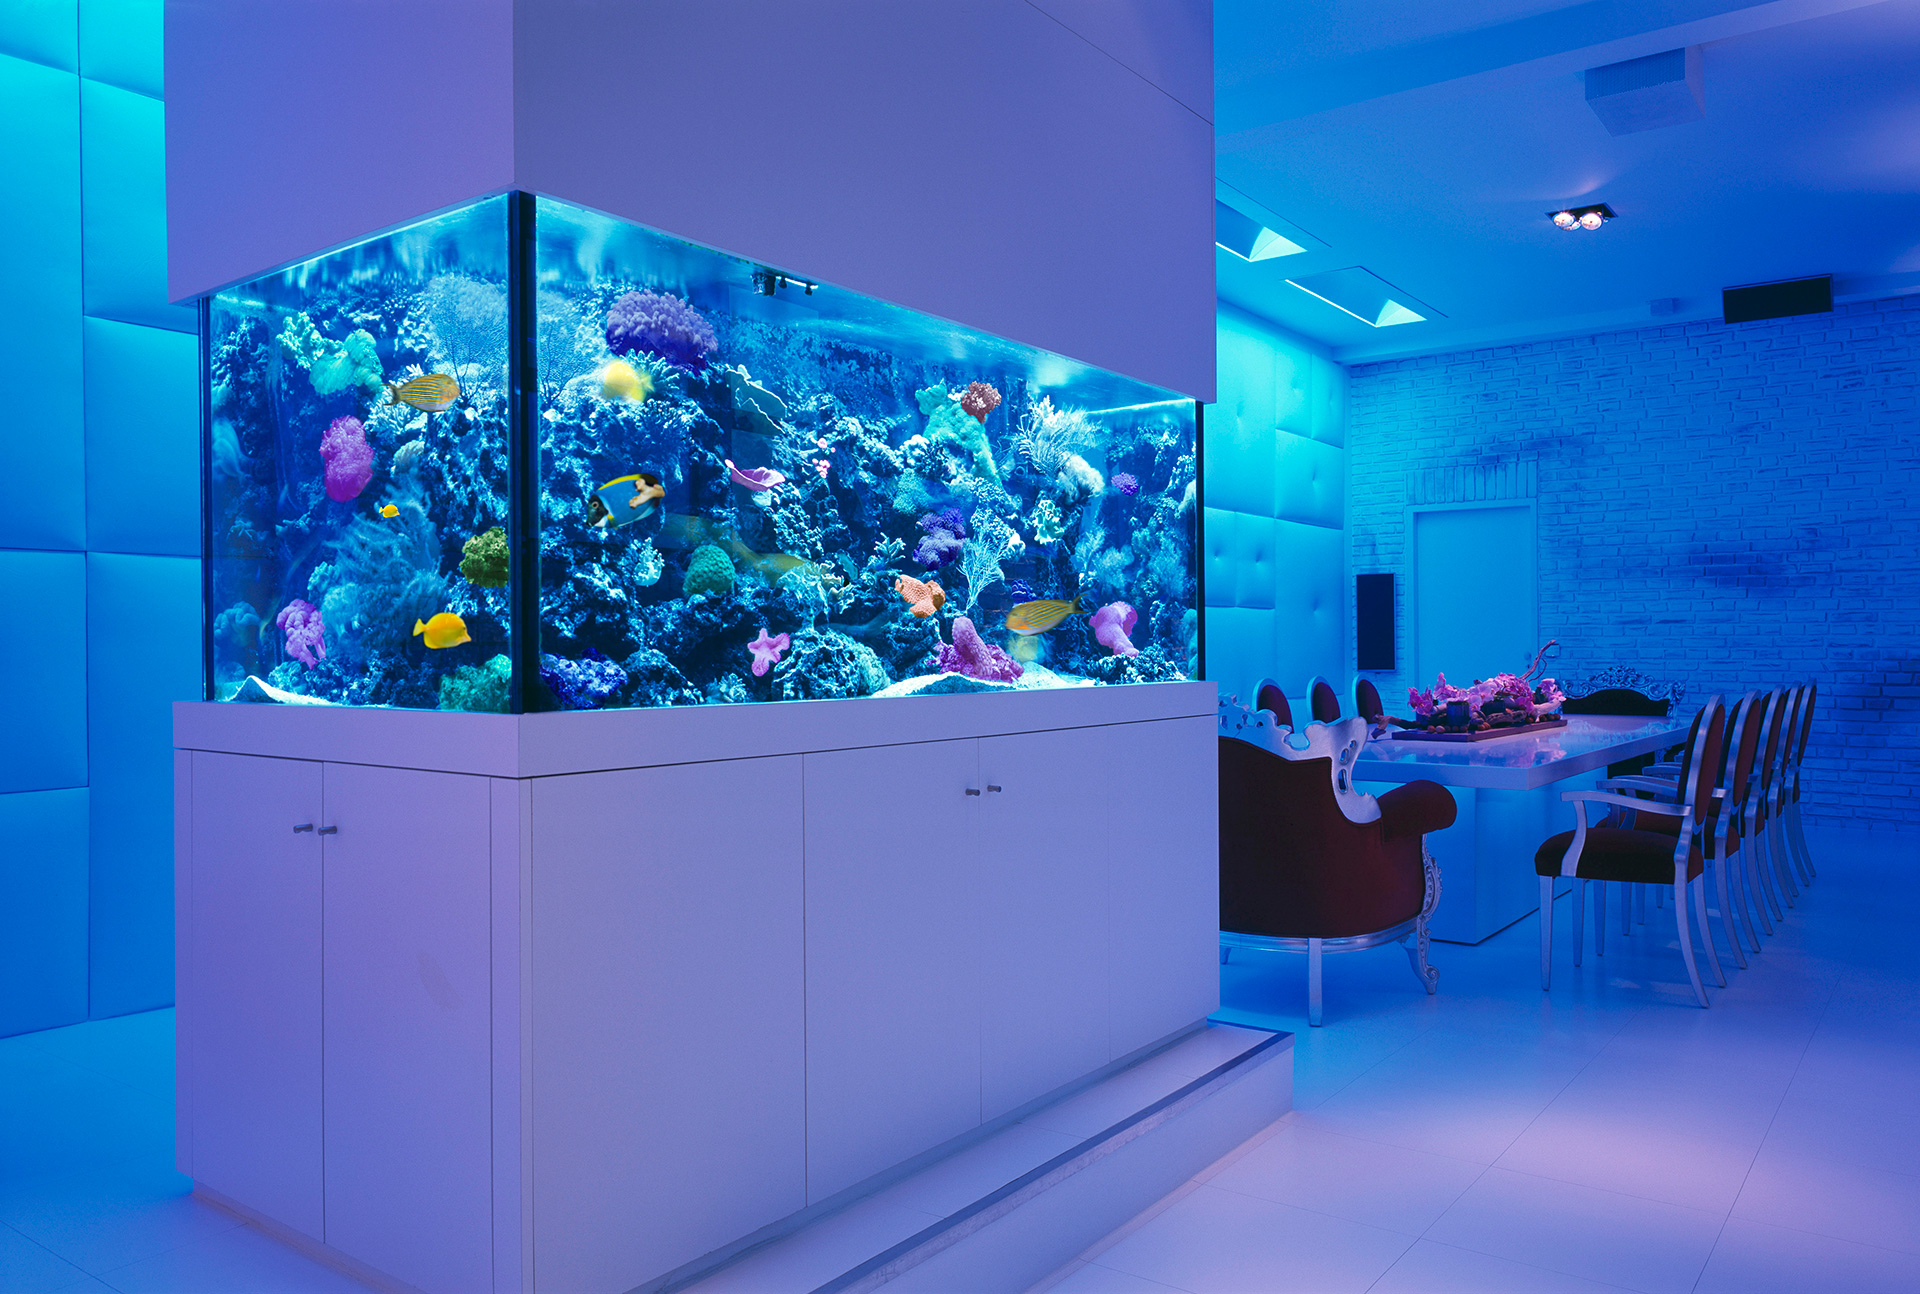 Fish aquarium is good in home - Room Decorating Ideas With Aquarium